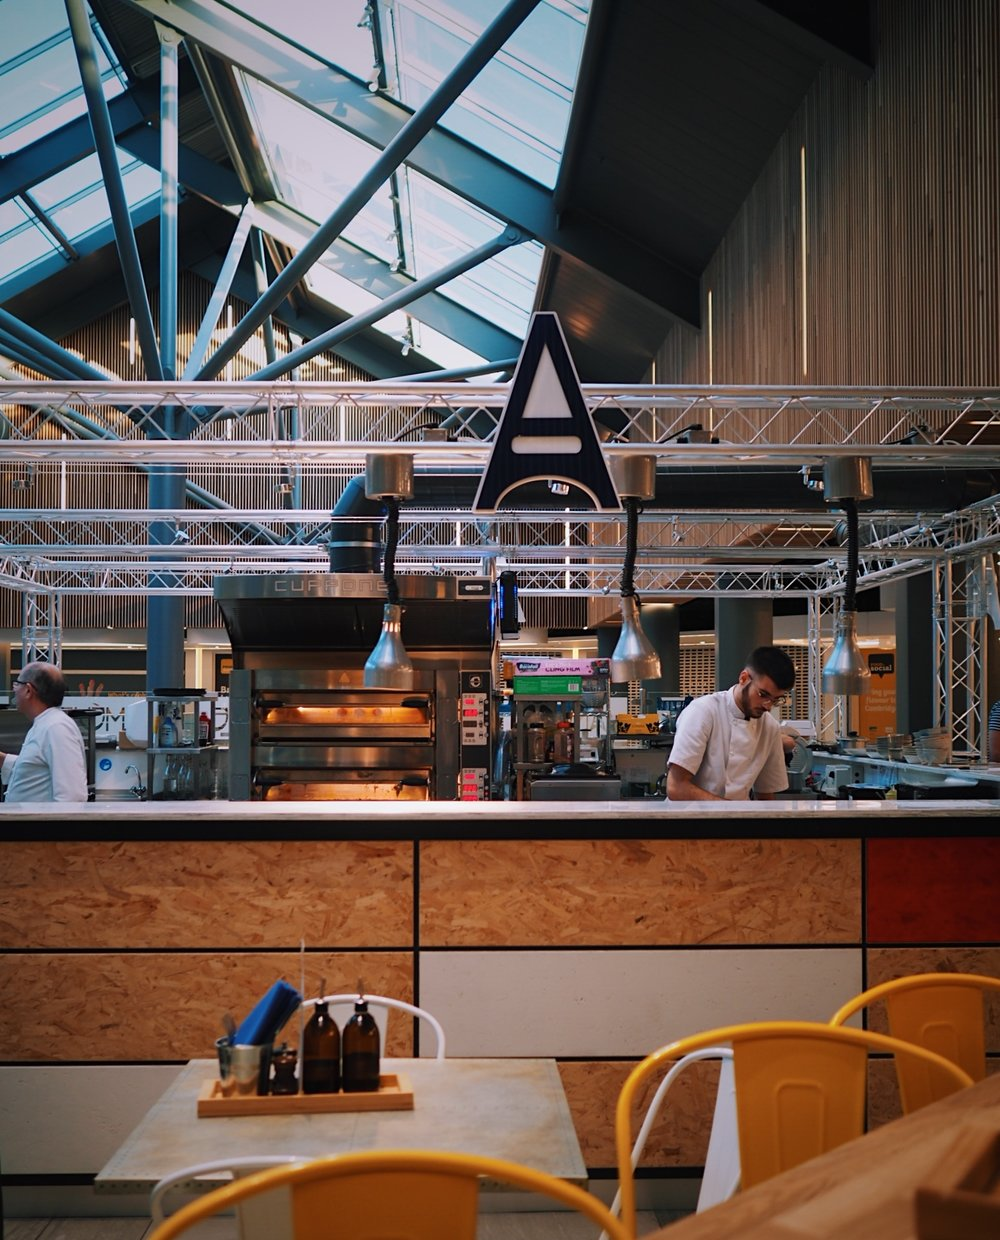 The open kitchen at Amelie Restaurant